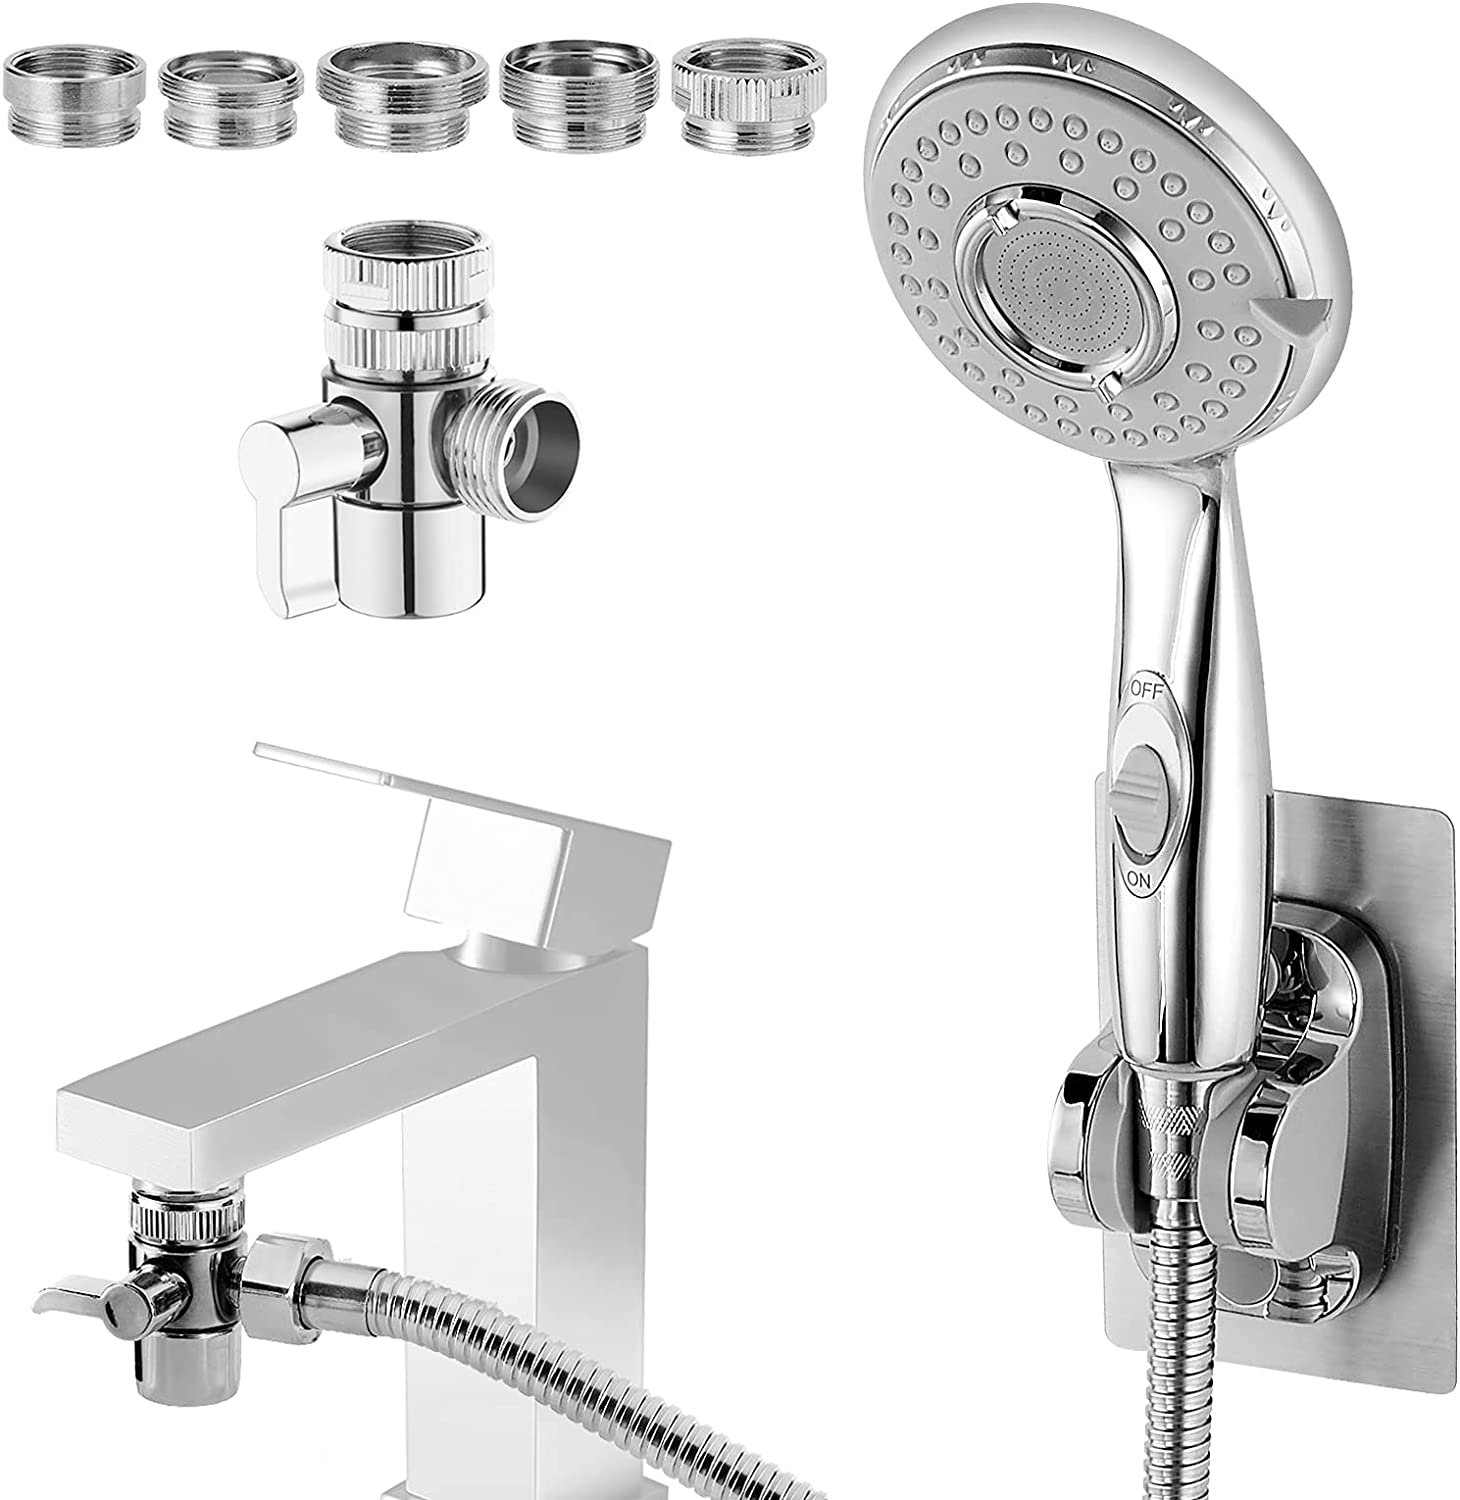 Shower Head for Bathtub Faucet - Wixann Sink Faucet Sprayer Attachment with 5 Adapters & ON/Off Extension, 4.9 FT Pipe for Hair Washing, Pet Dog Rinse, Baby Bath